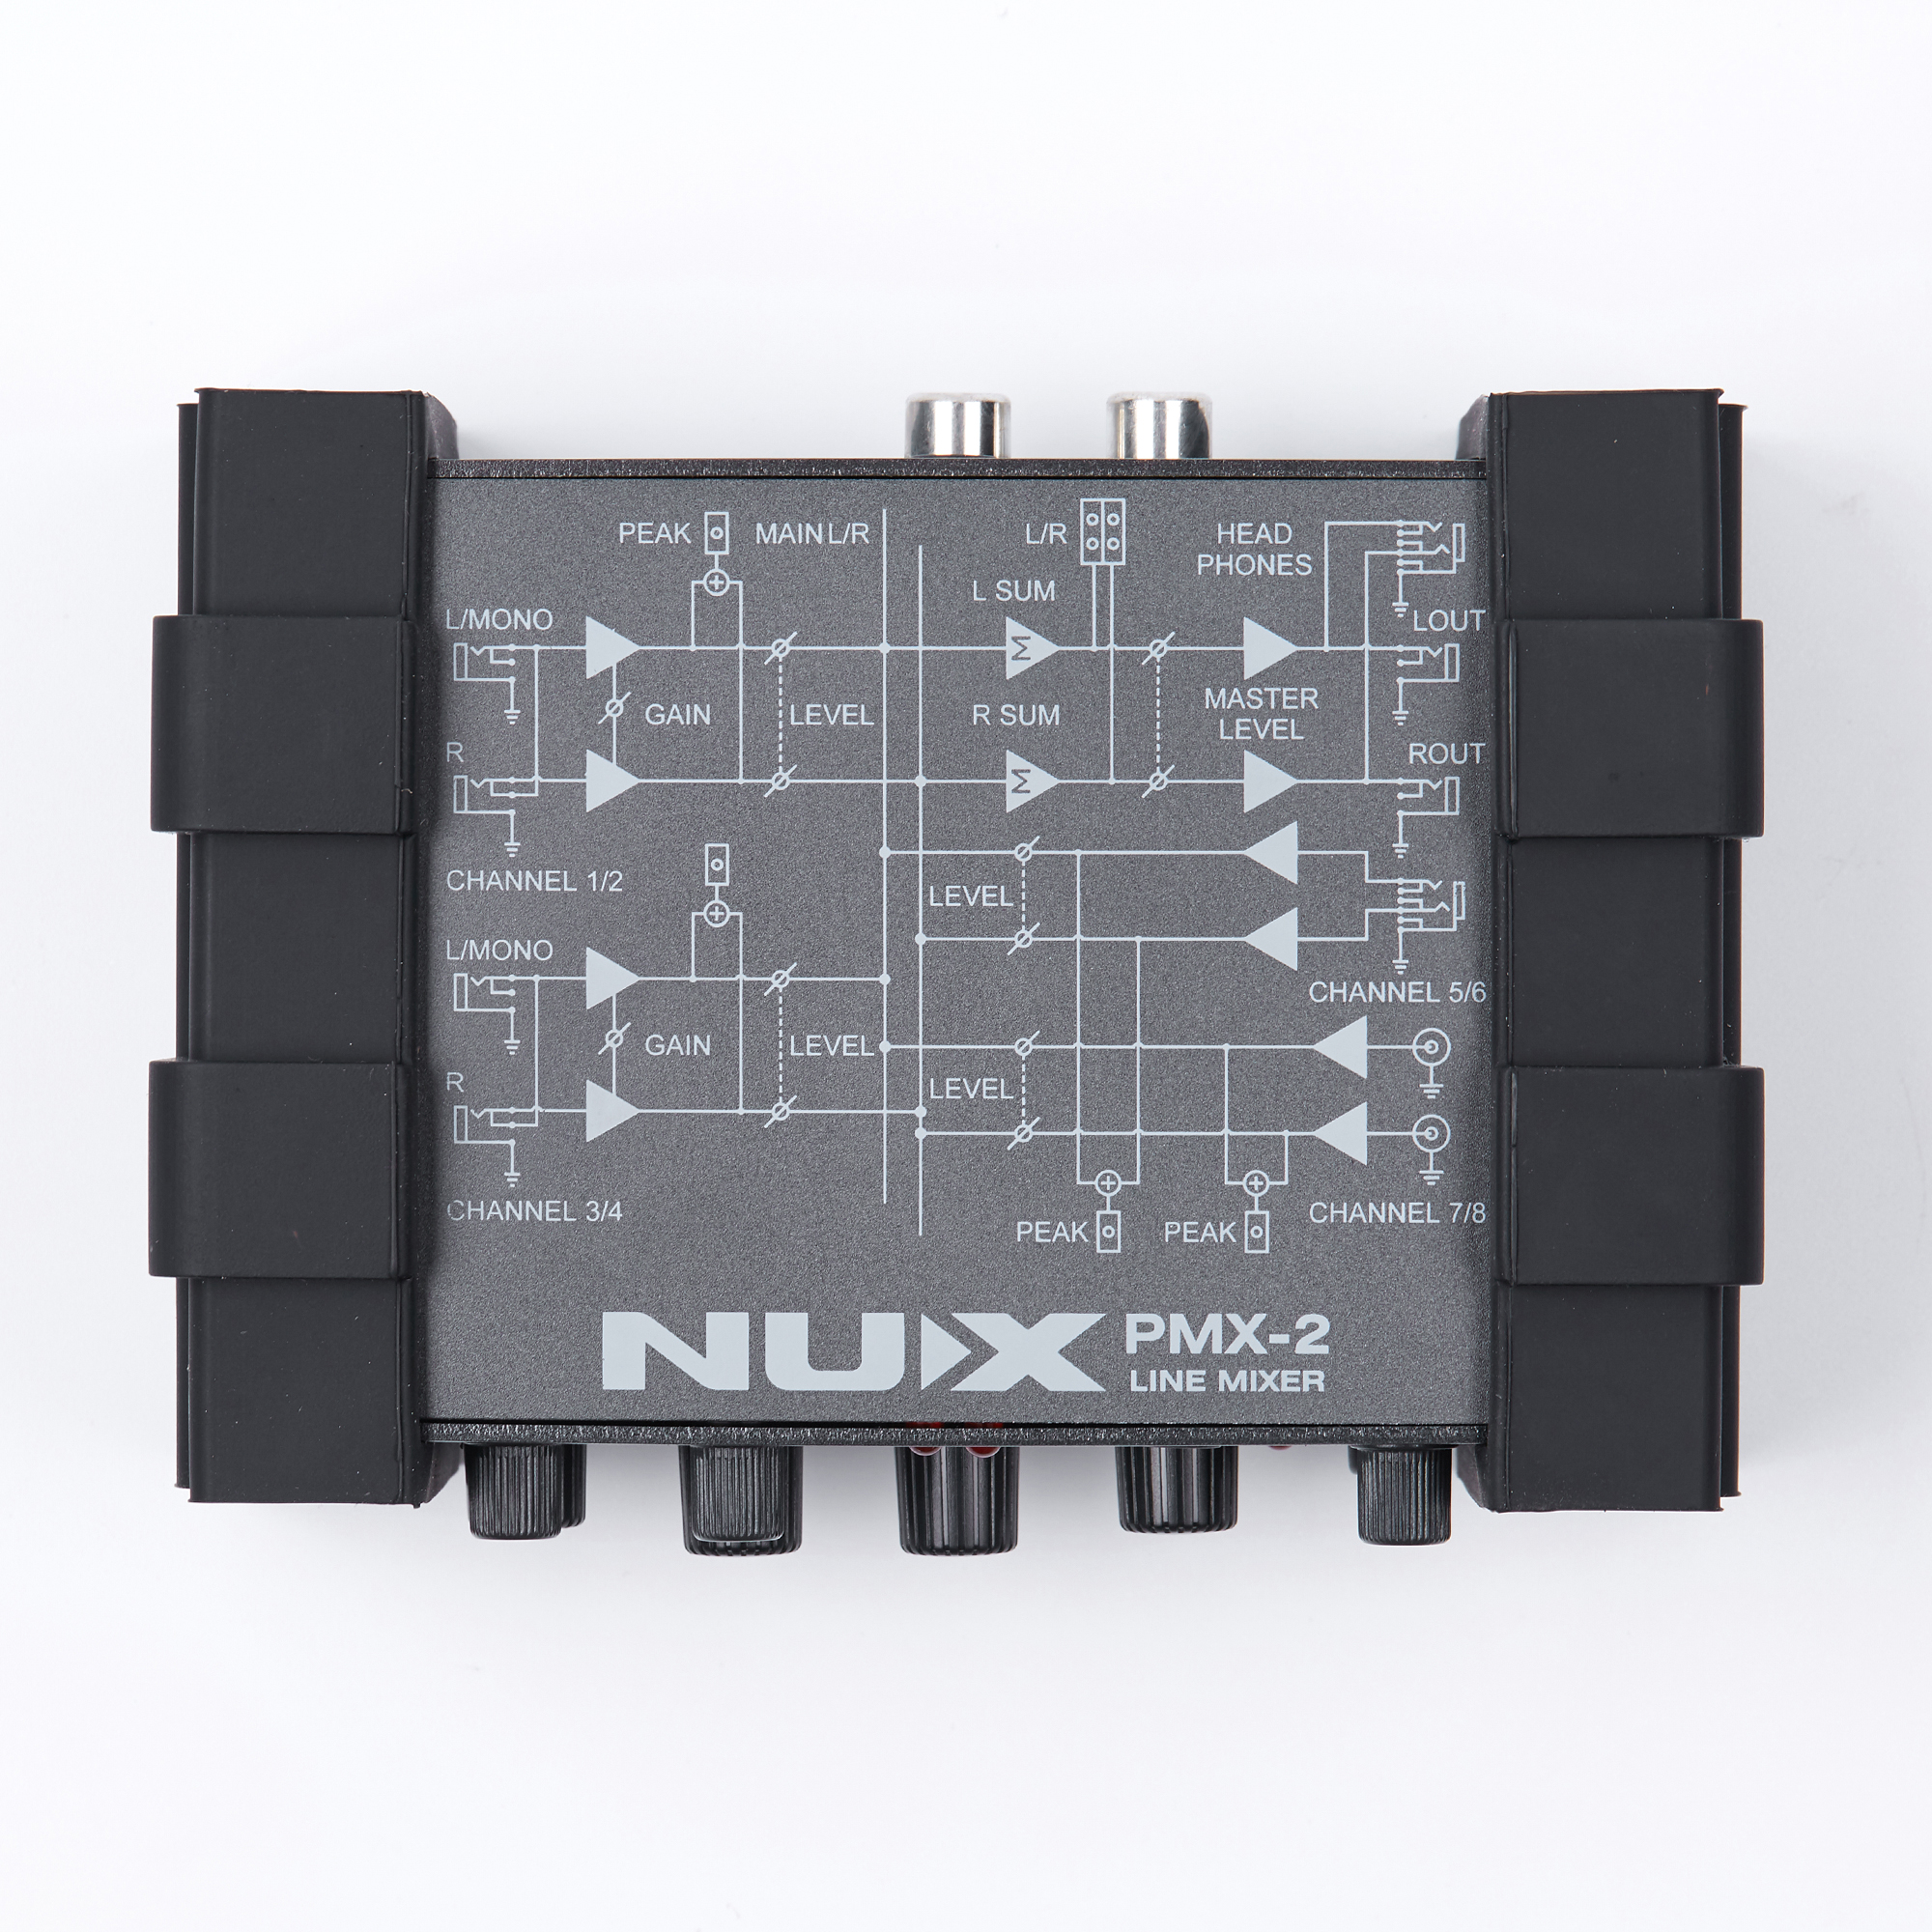 Gain Control 8 Inputs and 2 Outputs NUX PMX-2 Multi-Channel Mini Mixer 30 Musical Instruments Accessories for Guitar Bass Player спортивный инвентарь original fittools ремешок для растяжки с фиксаторами